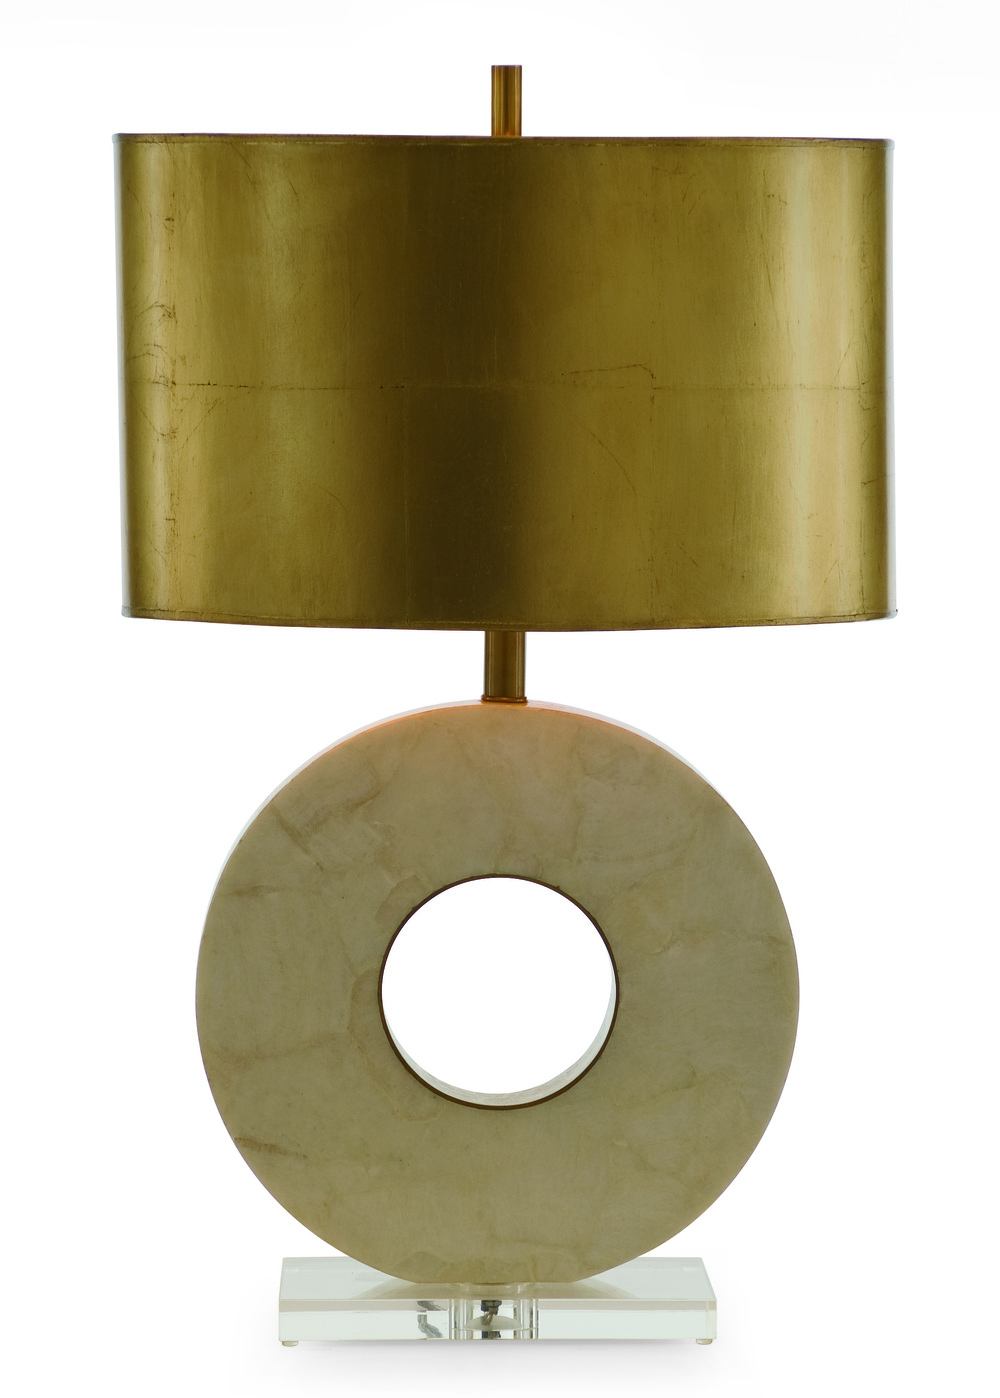 Parisian Table Lamp Pride Sasser, ASFD Grand Tour Collection                        Century Furniture.